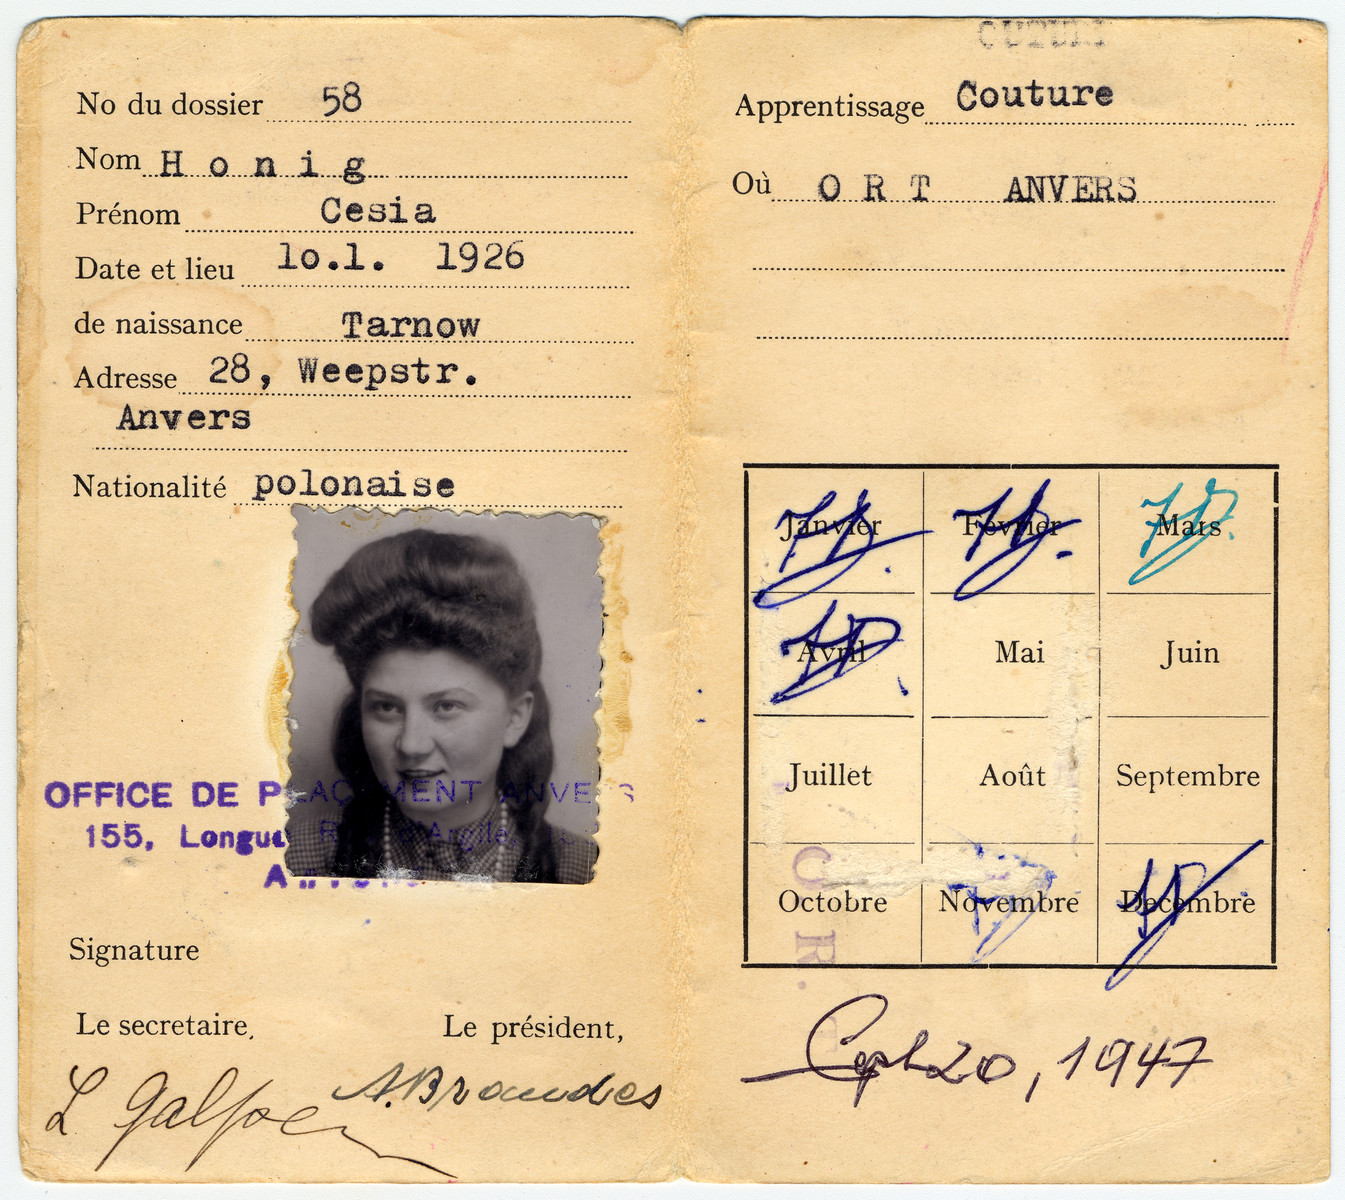 Identification card for Cesia Honig issued by ORT in Antwerp, Belgim where she was studying dress-making while awaiting her American visa.